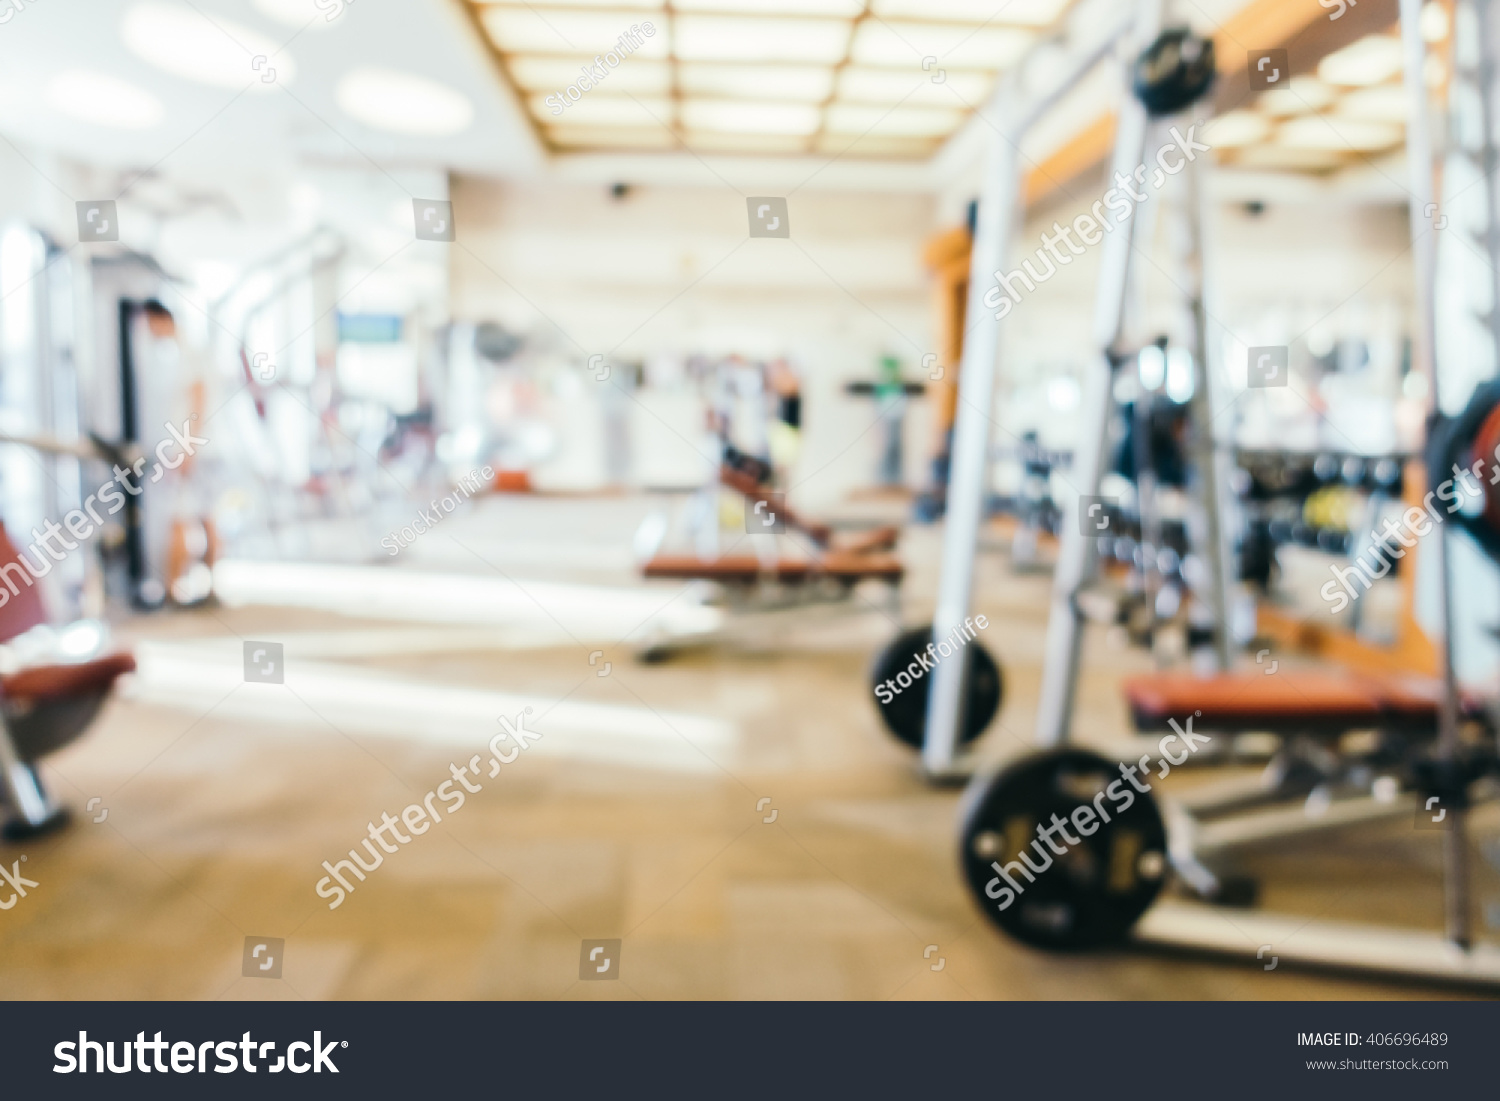 Abstract blur fitness gym room interior stock photo